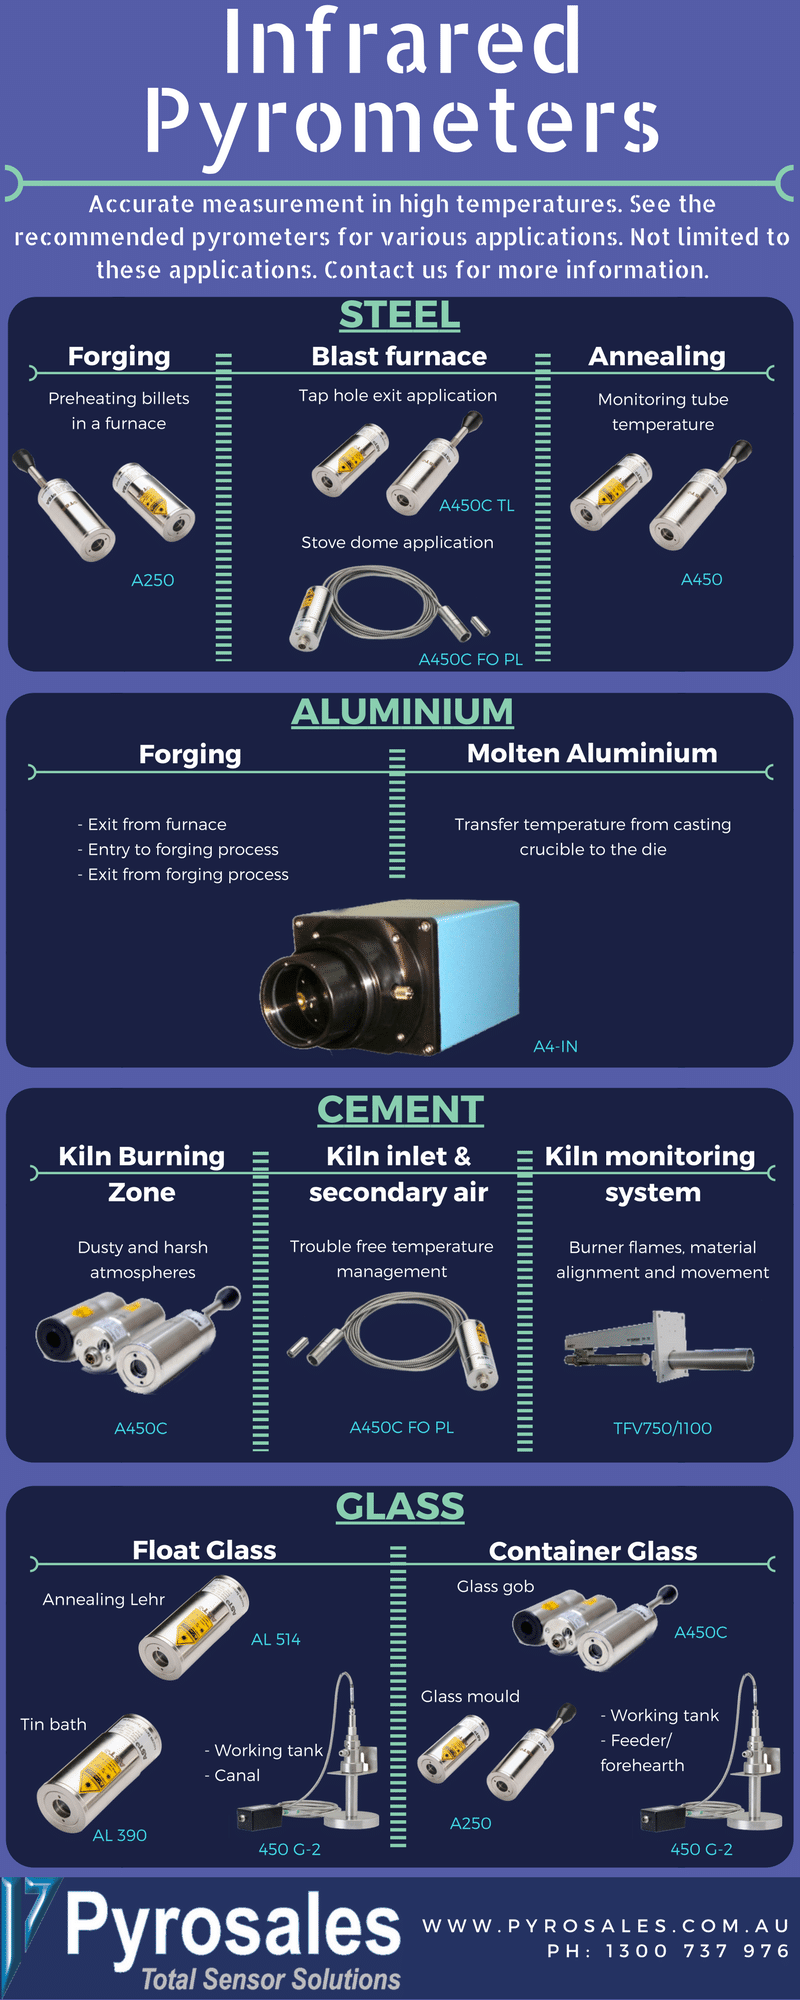 Infared Pyrometers Infographic